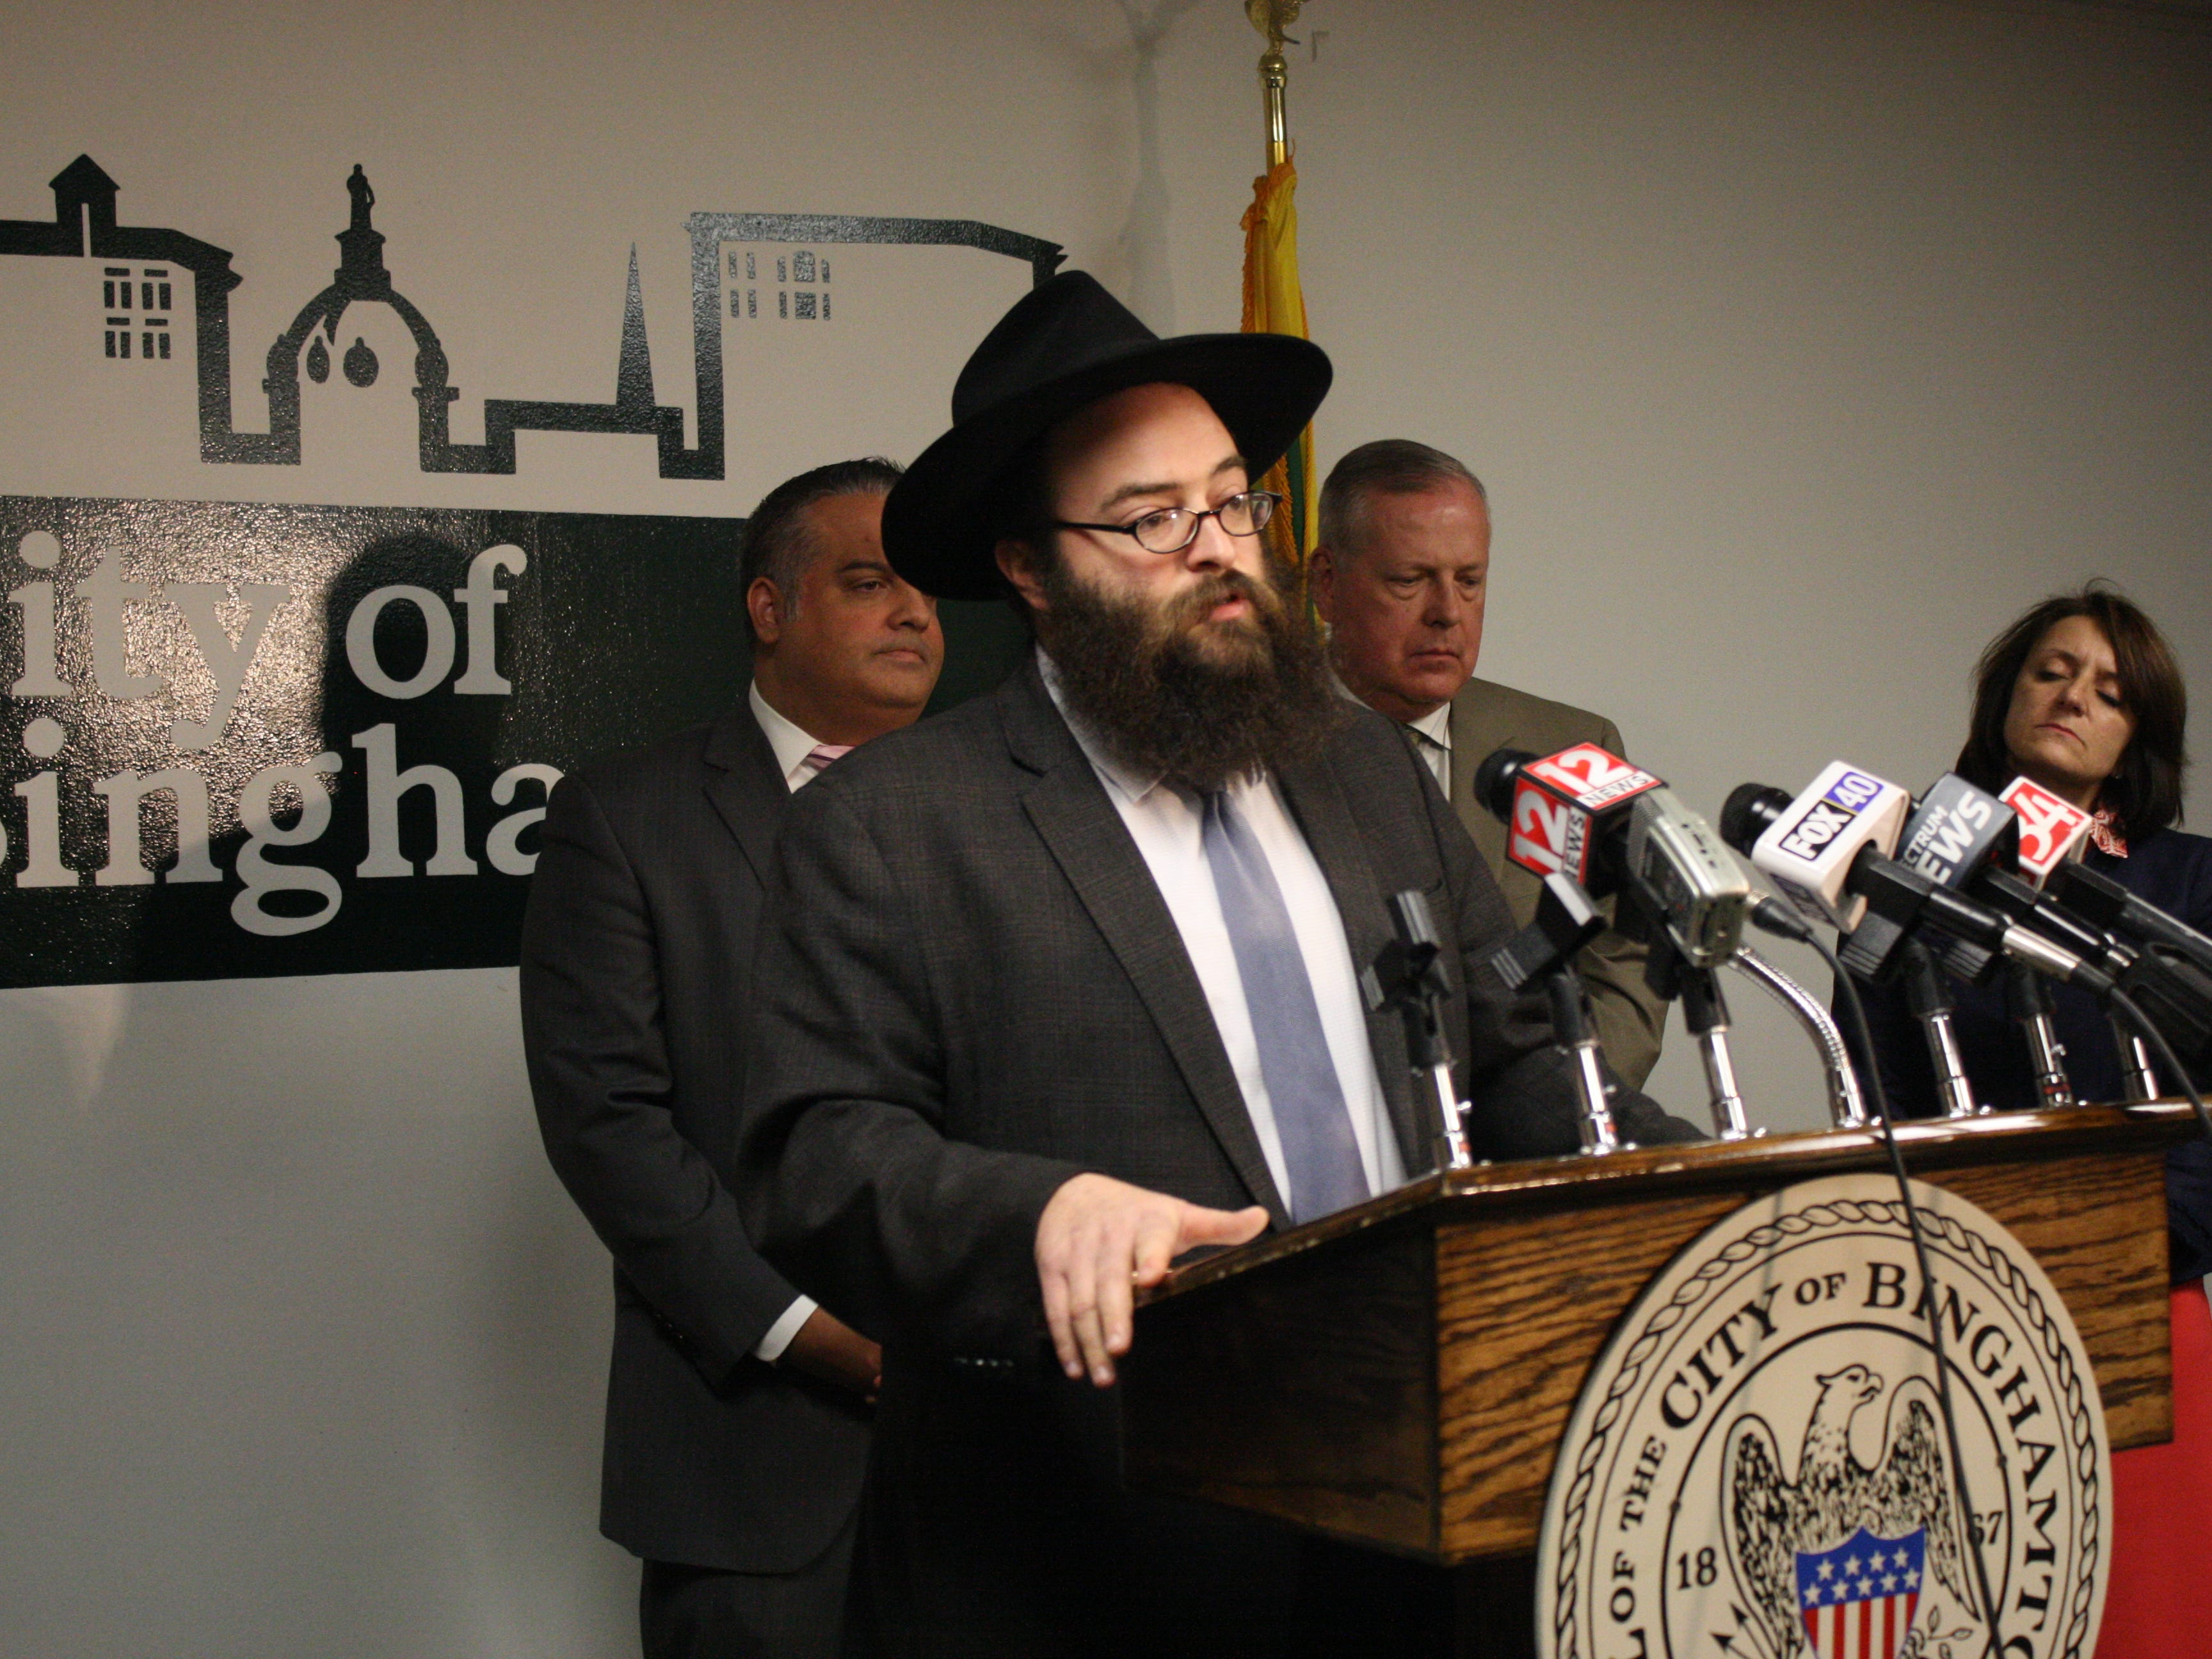 Rabbi Levi Slonim, director of Programming and Development at the Chabad Center for Jewish Student Life at Binghamton University, speaks Wednesday after swastikas were found on and around Binghamton High School Tuesday morning.